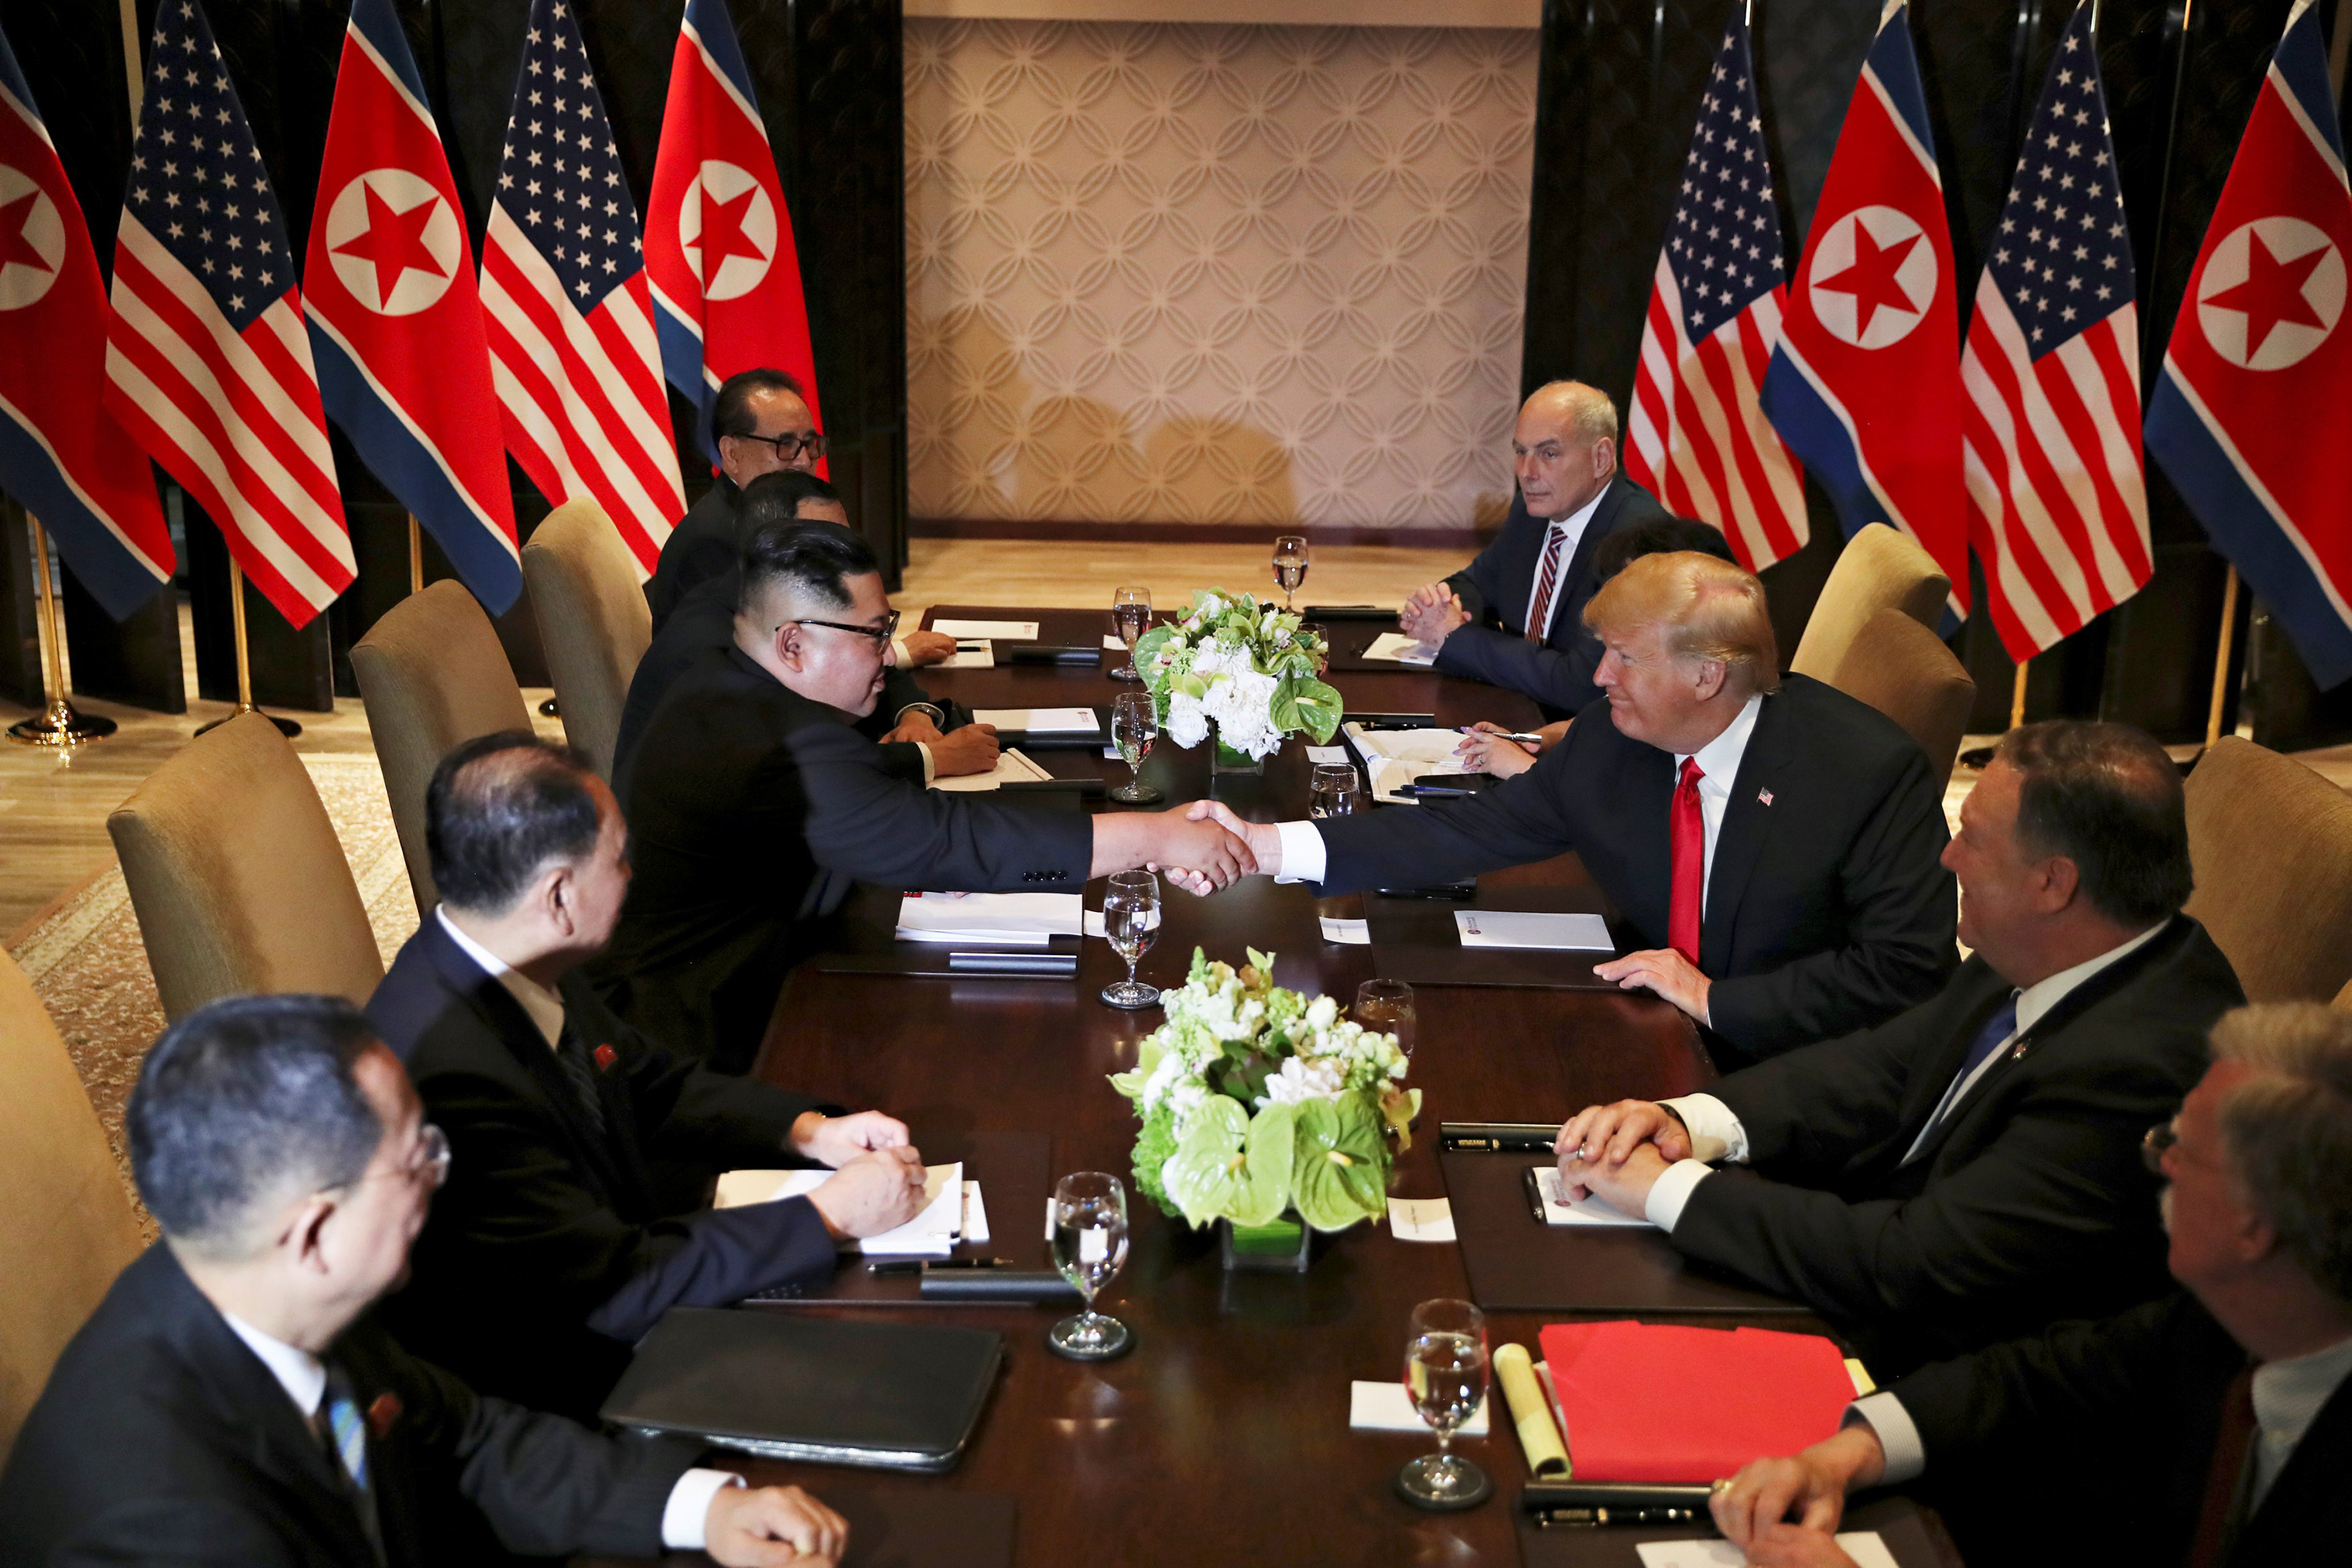 President Trump shakes hands with North Korea's Kim Jong Un before their expanded bilateral meeting in Singapore on June 12, 2018.